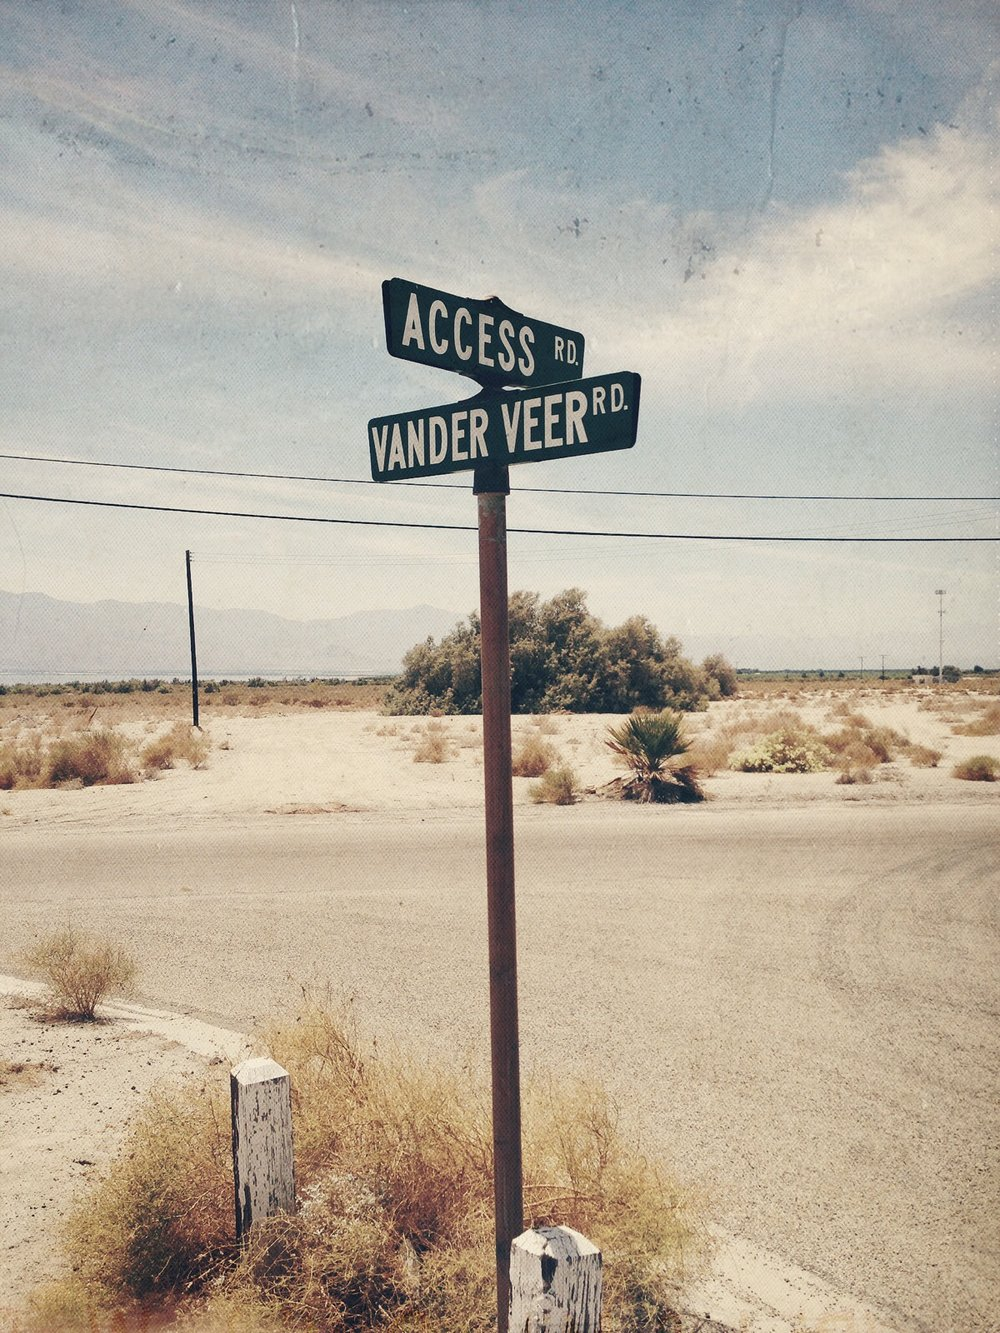 Street sign at Access & Vander Veer Streets, Salton Sea